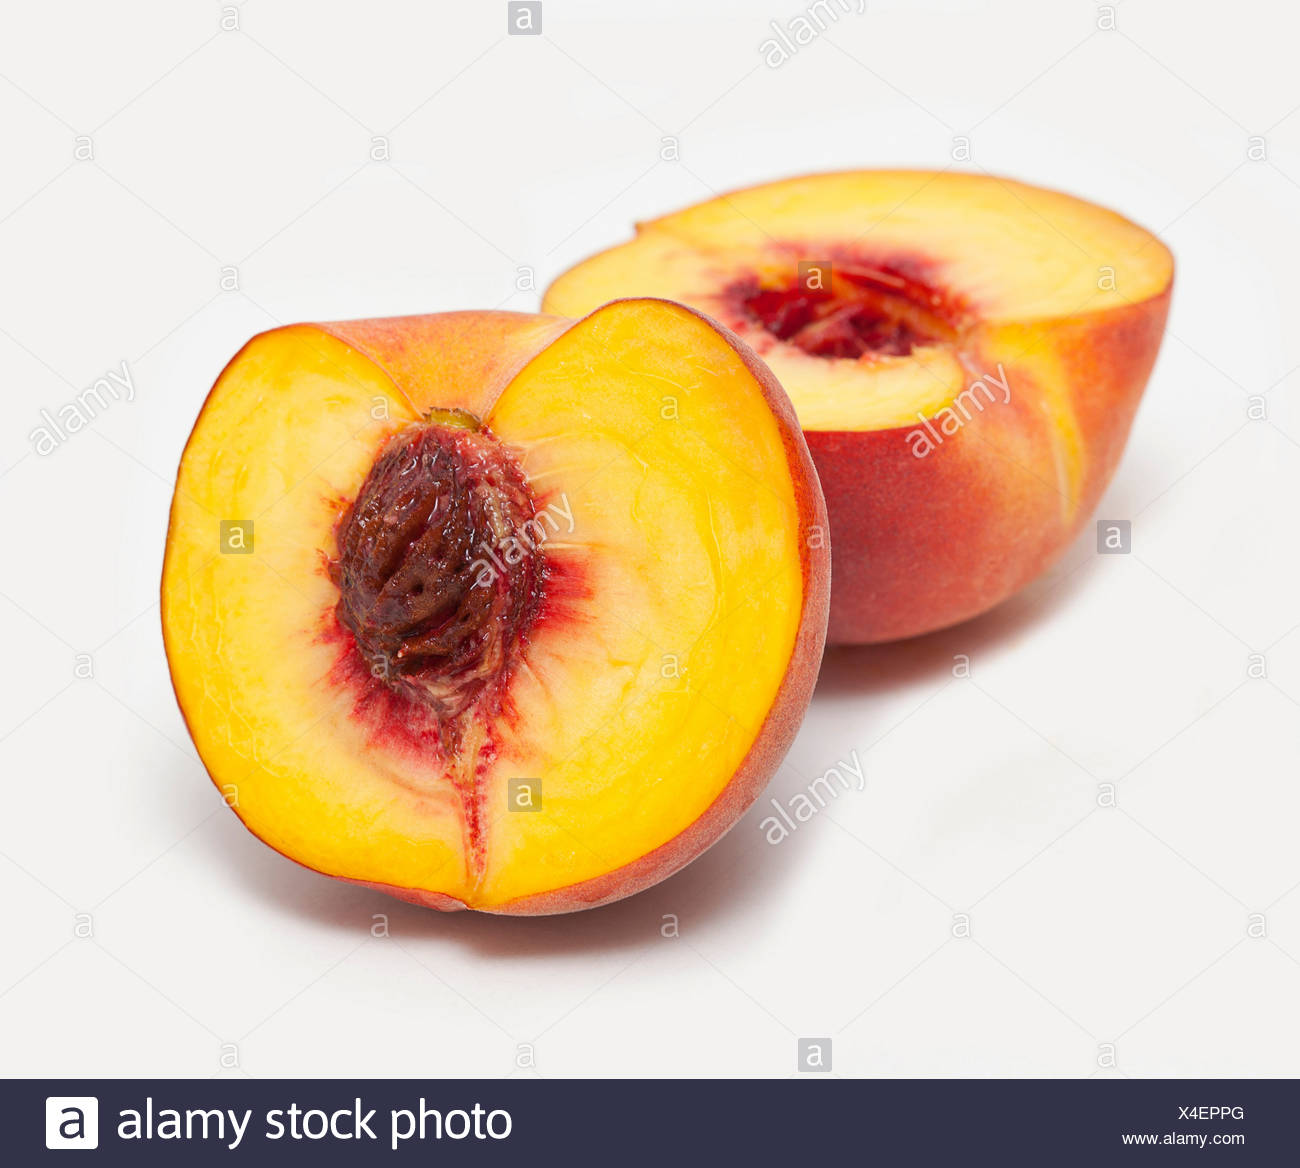 Peach cut in half - Stock Image